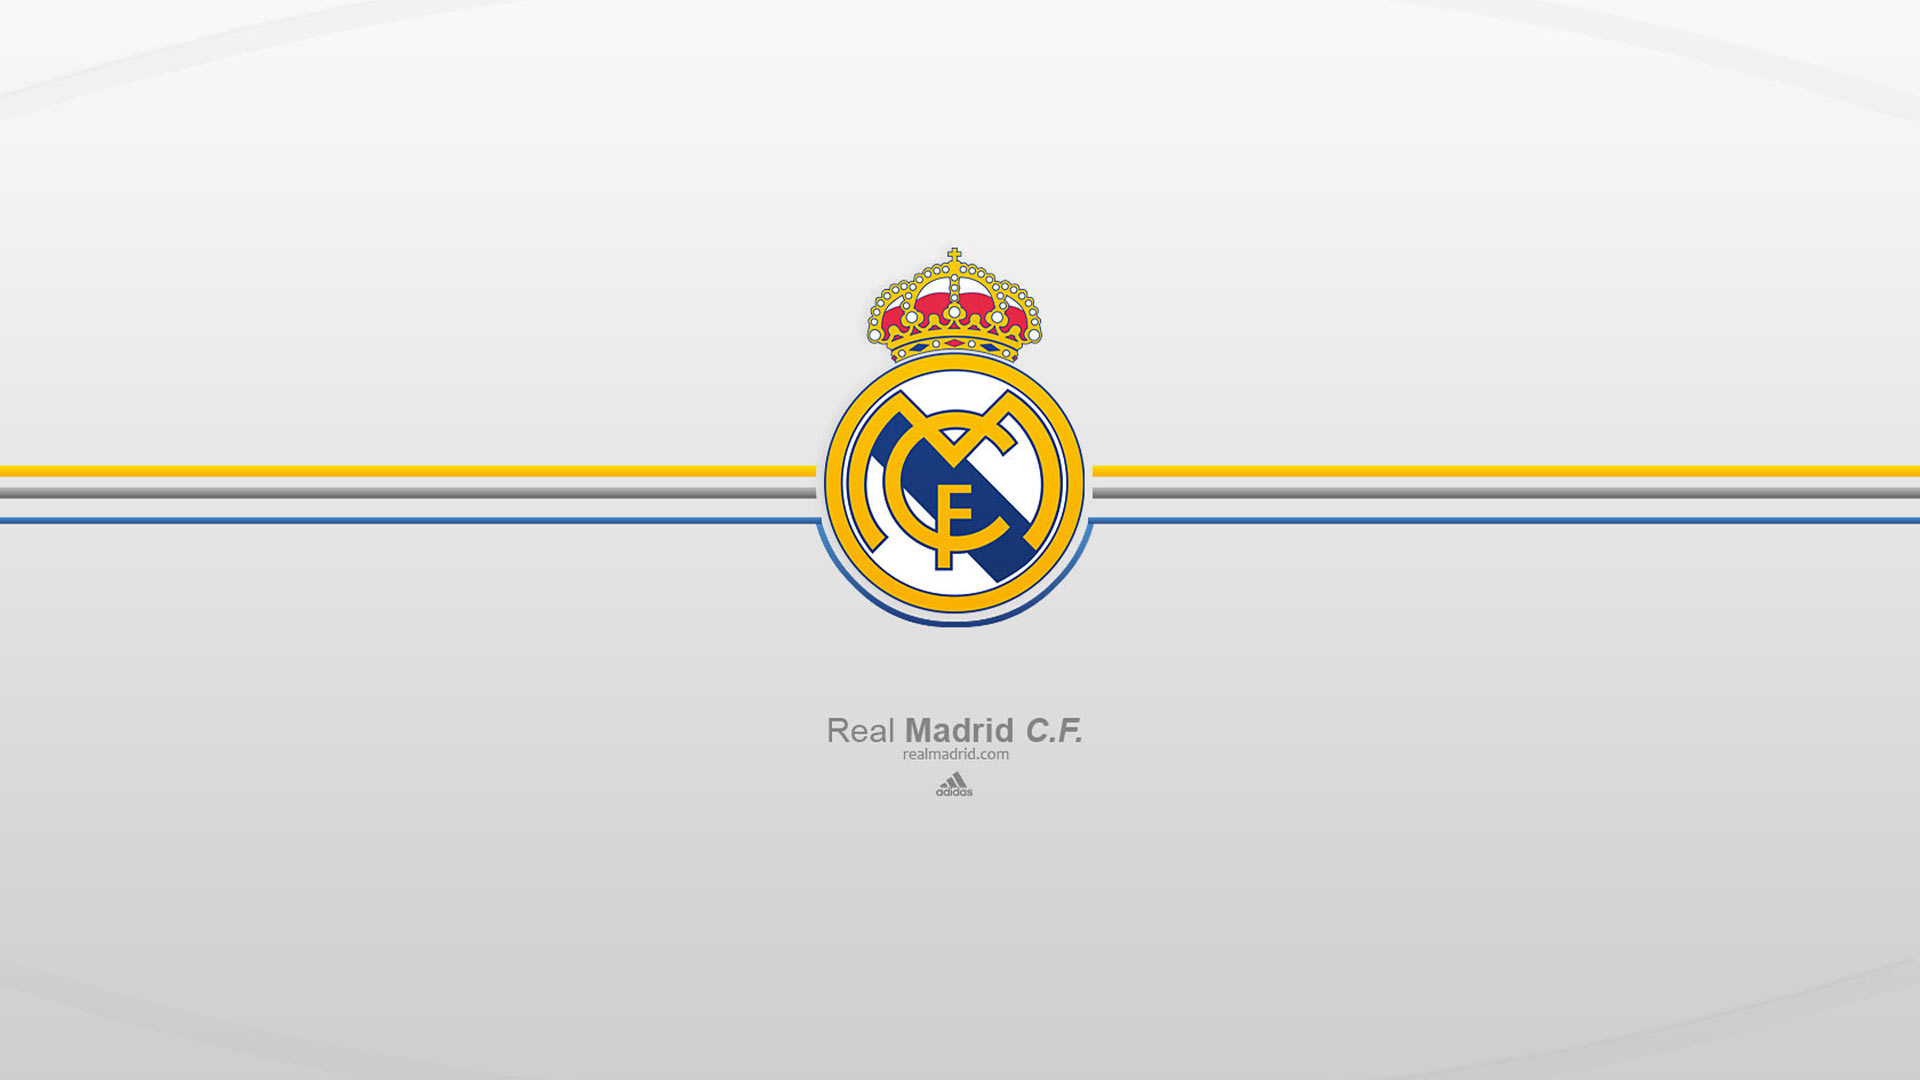 Real Madrid Wallpaper Hd For Desktop (2)